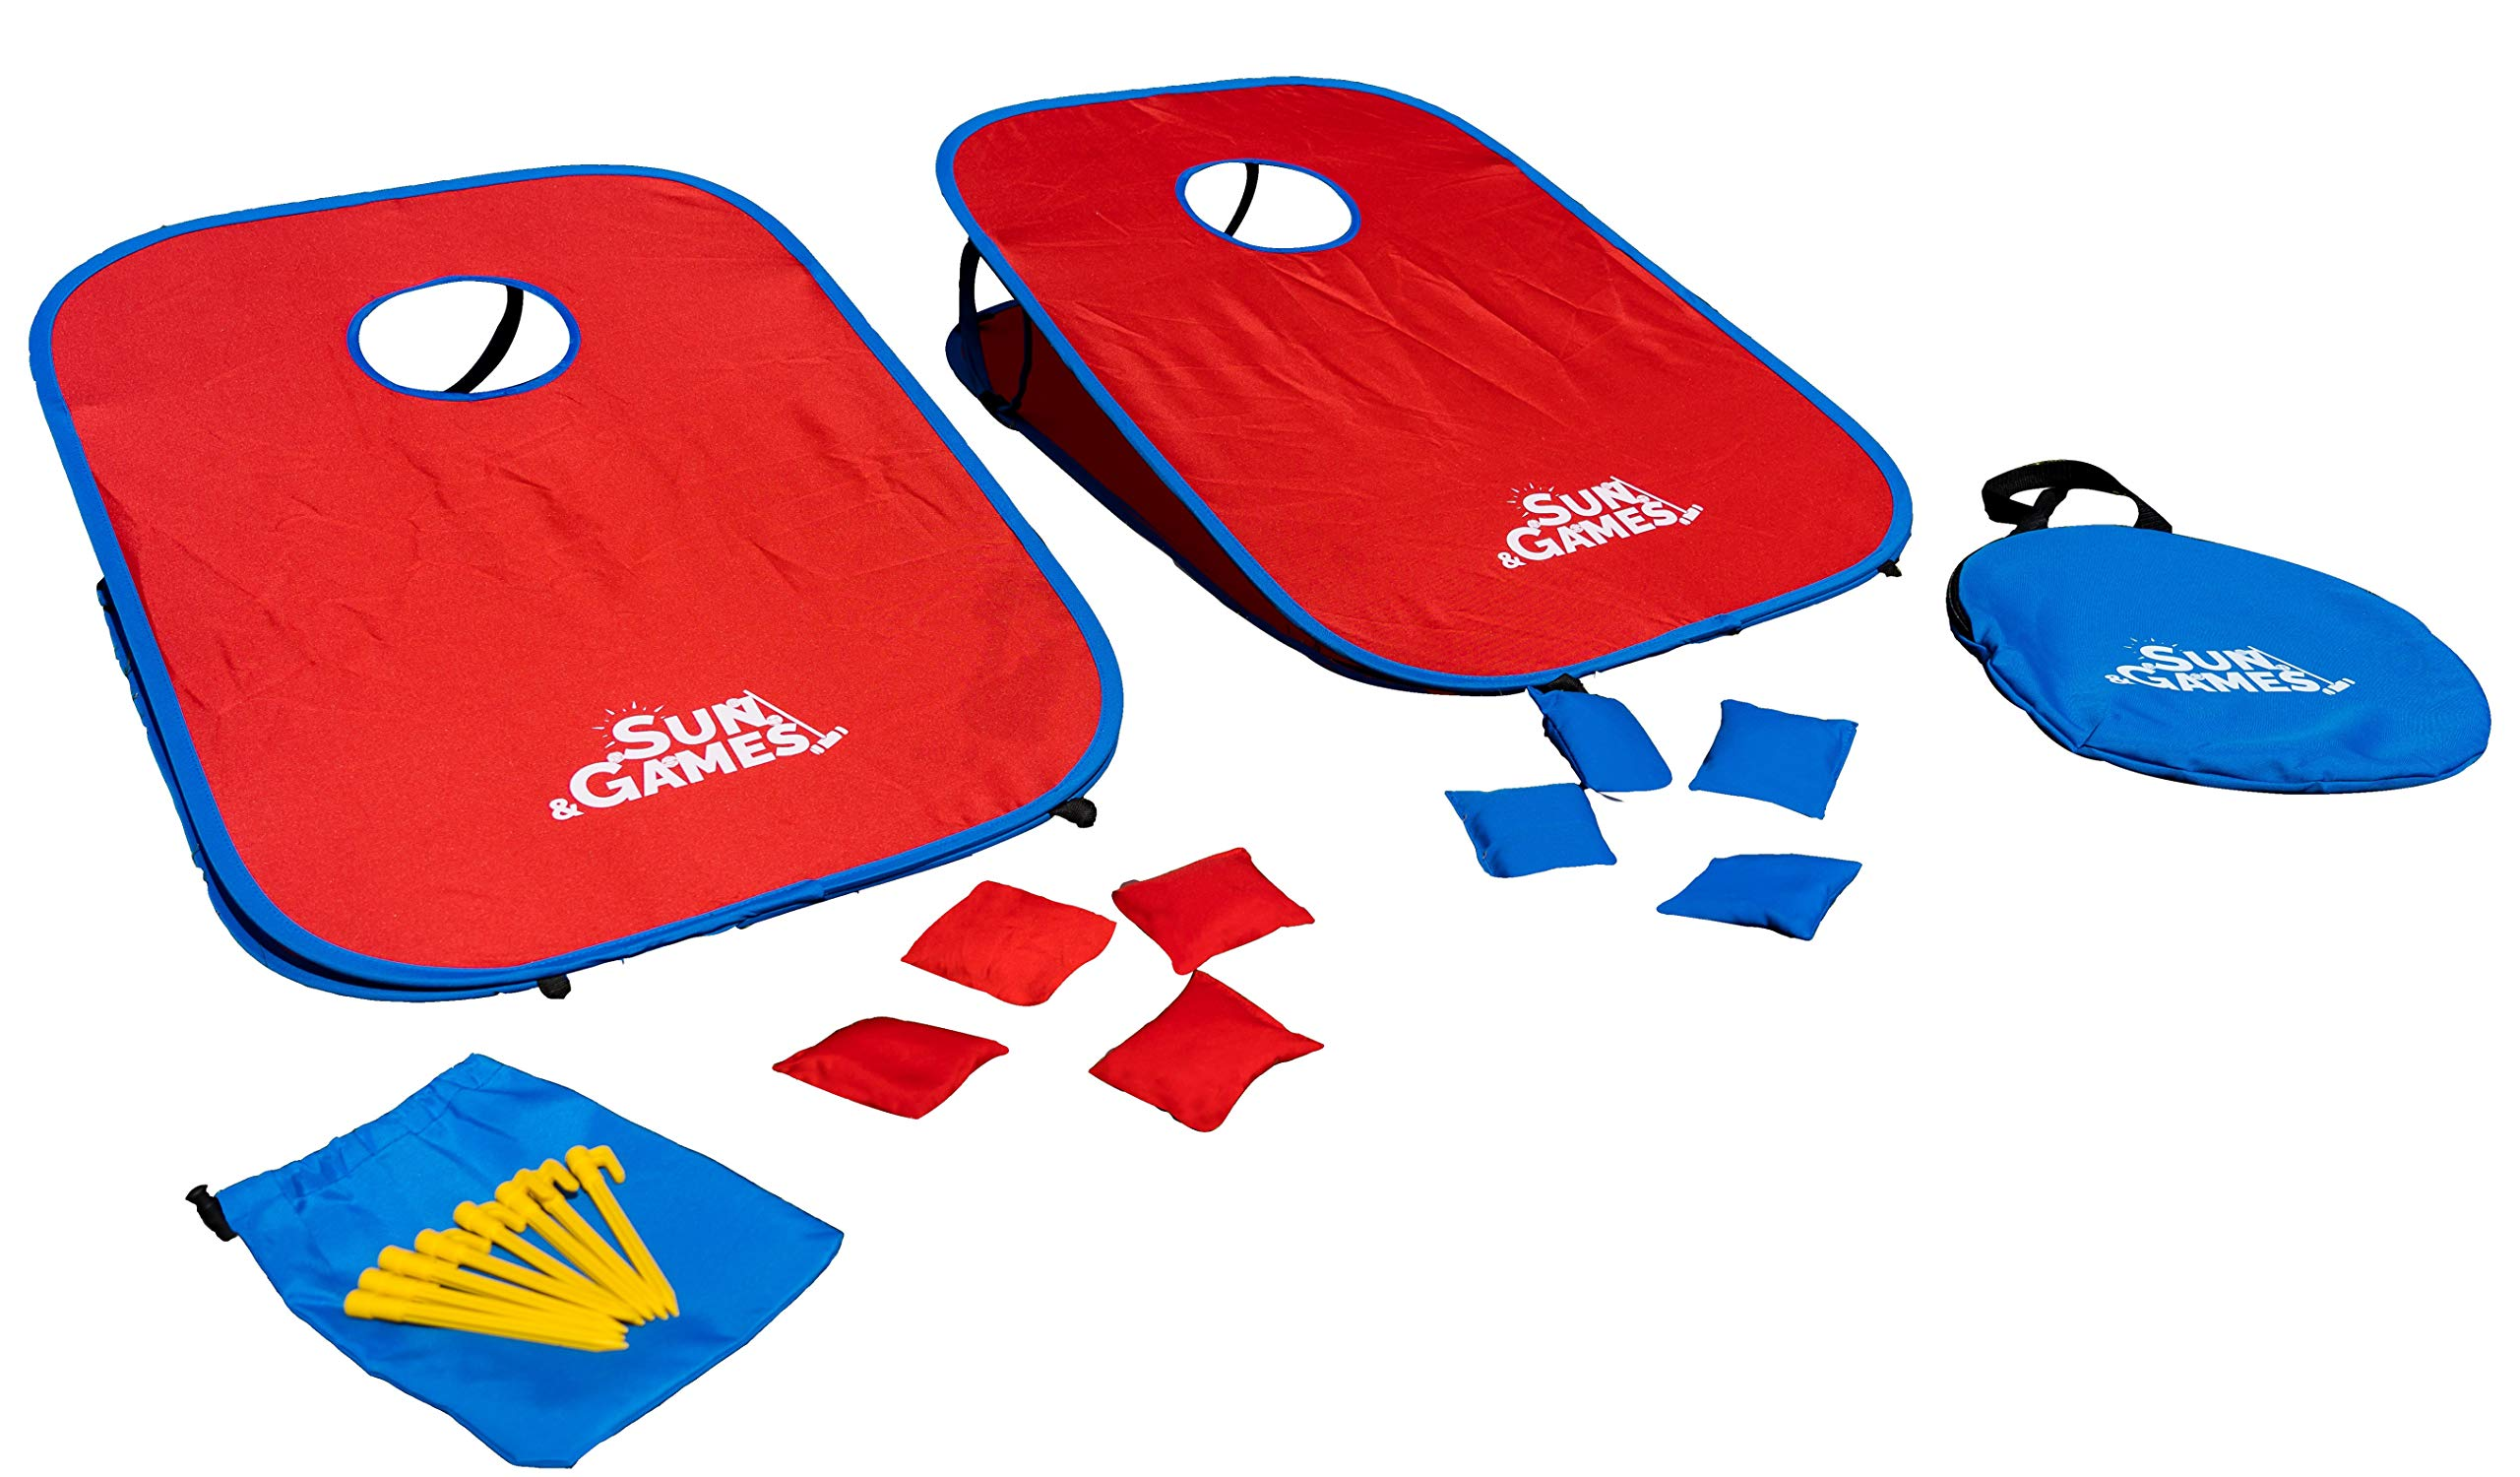 Portable Cornhole Game Set Made of All-Weather, Tear-Resistant Fabric   8 beanbags and Travel Case   Tailgate Size by Sun & Games